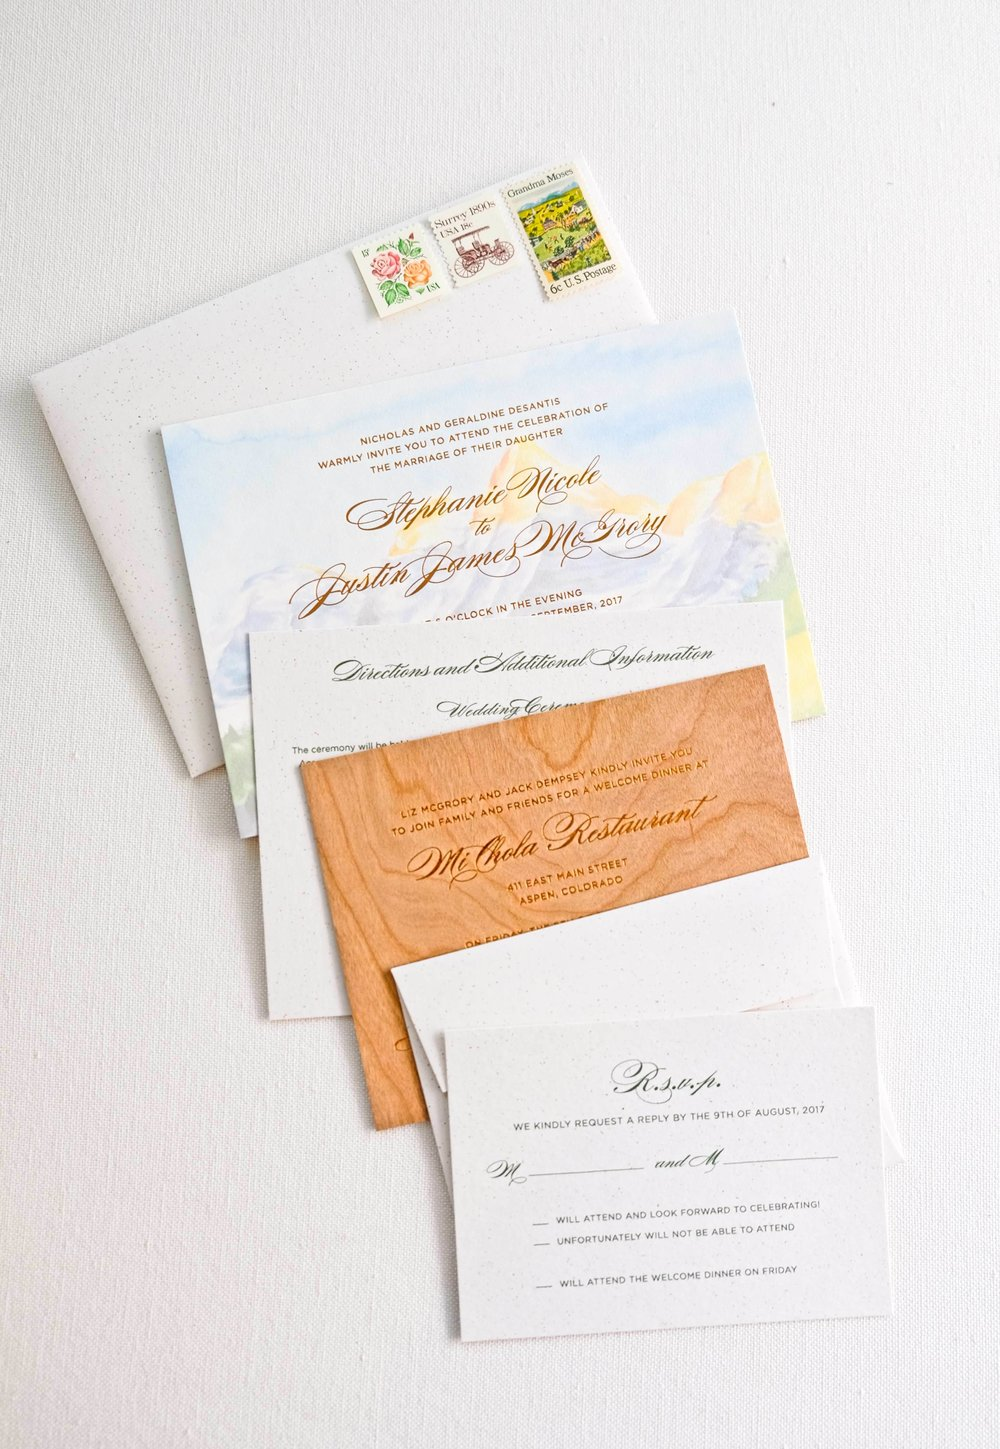 Aspen wedding invitation with watercolor painting and copper foil stamp   www.chavelli.com